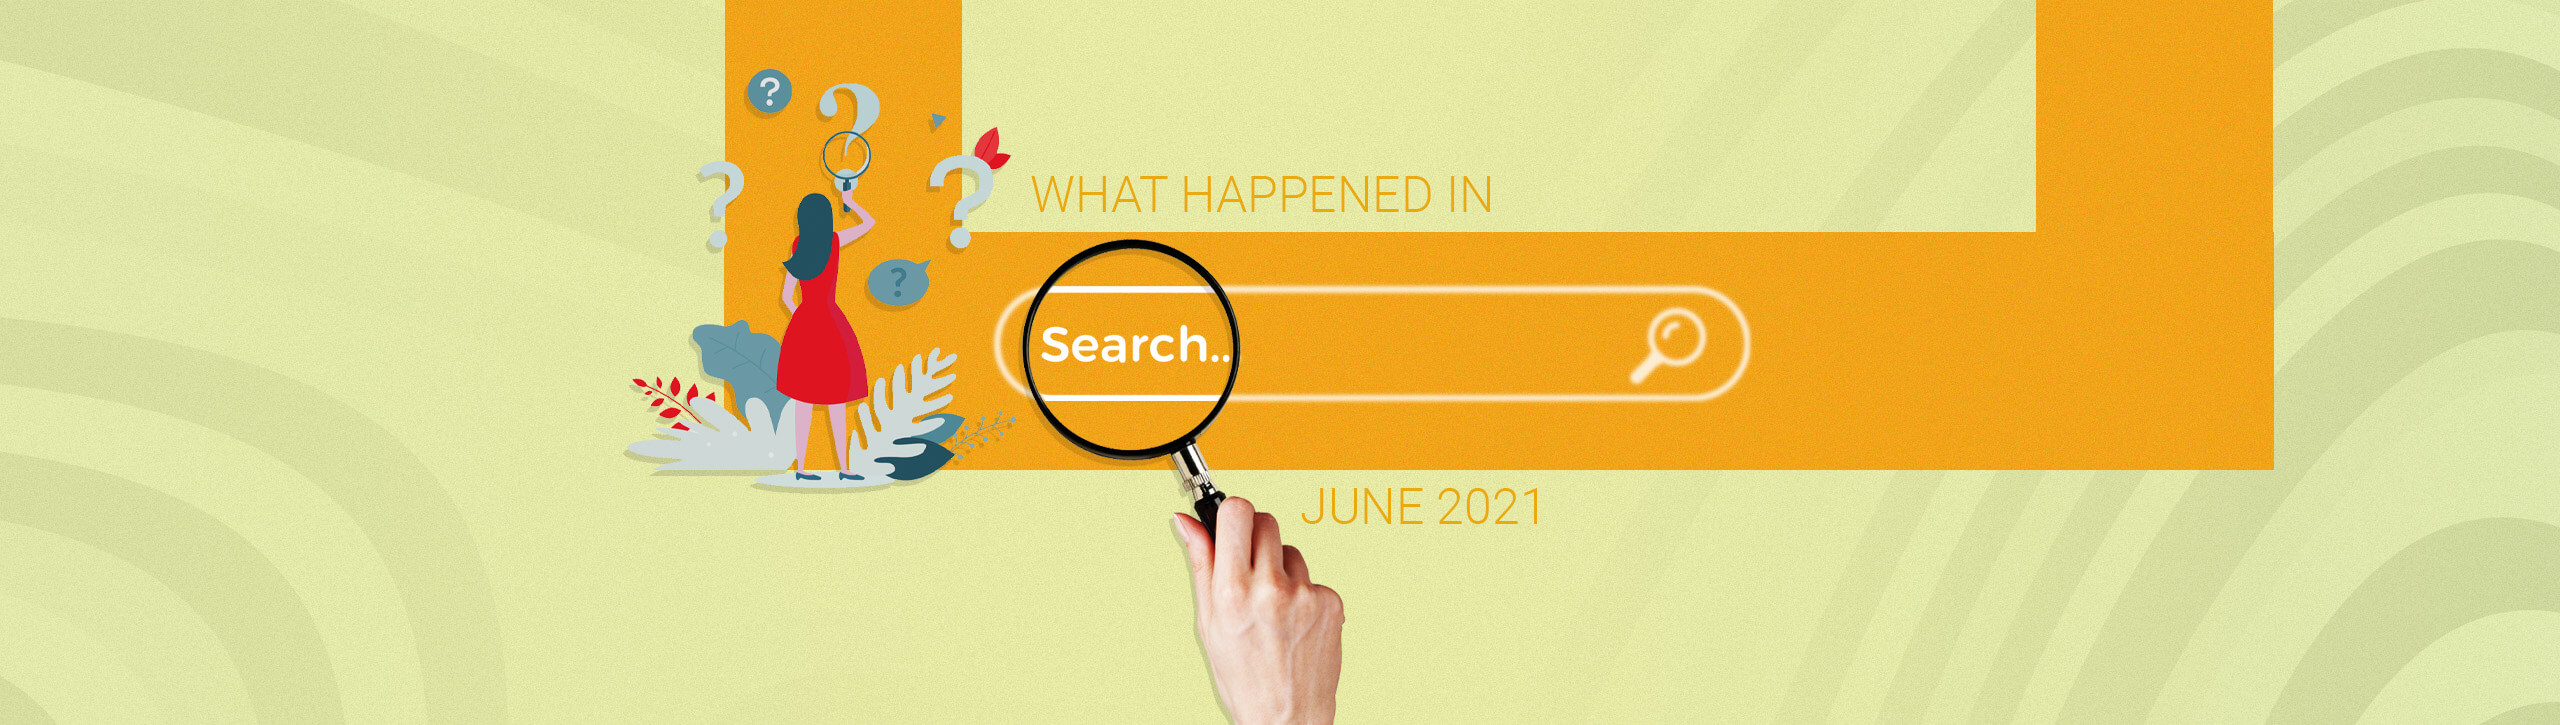 Search Round Up June 2021